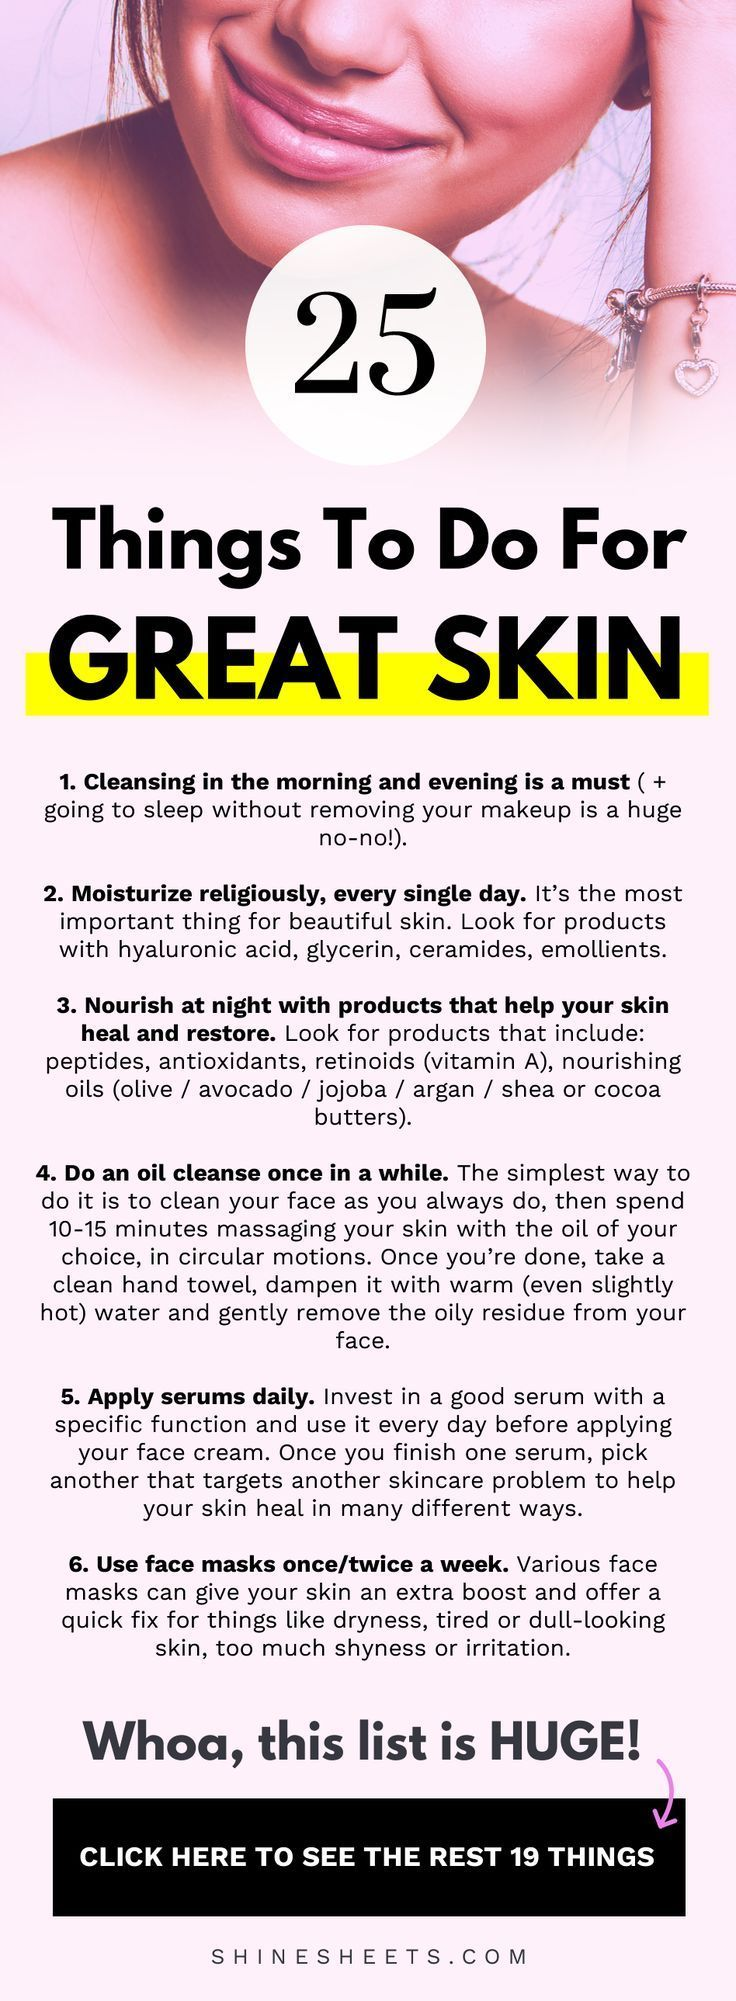 25 Things To Do For Good Skin Shinesheets Sensitive Skin Care Dry Skin Care Healthy Skin Care